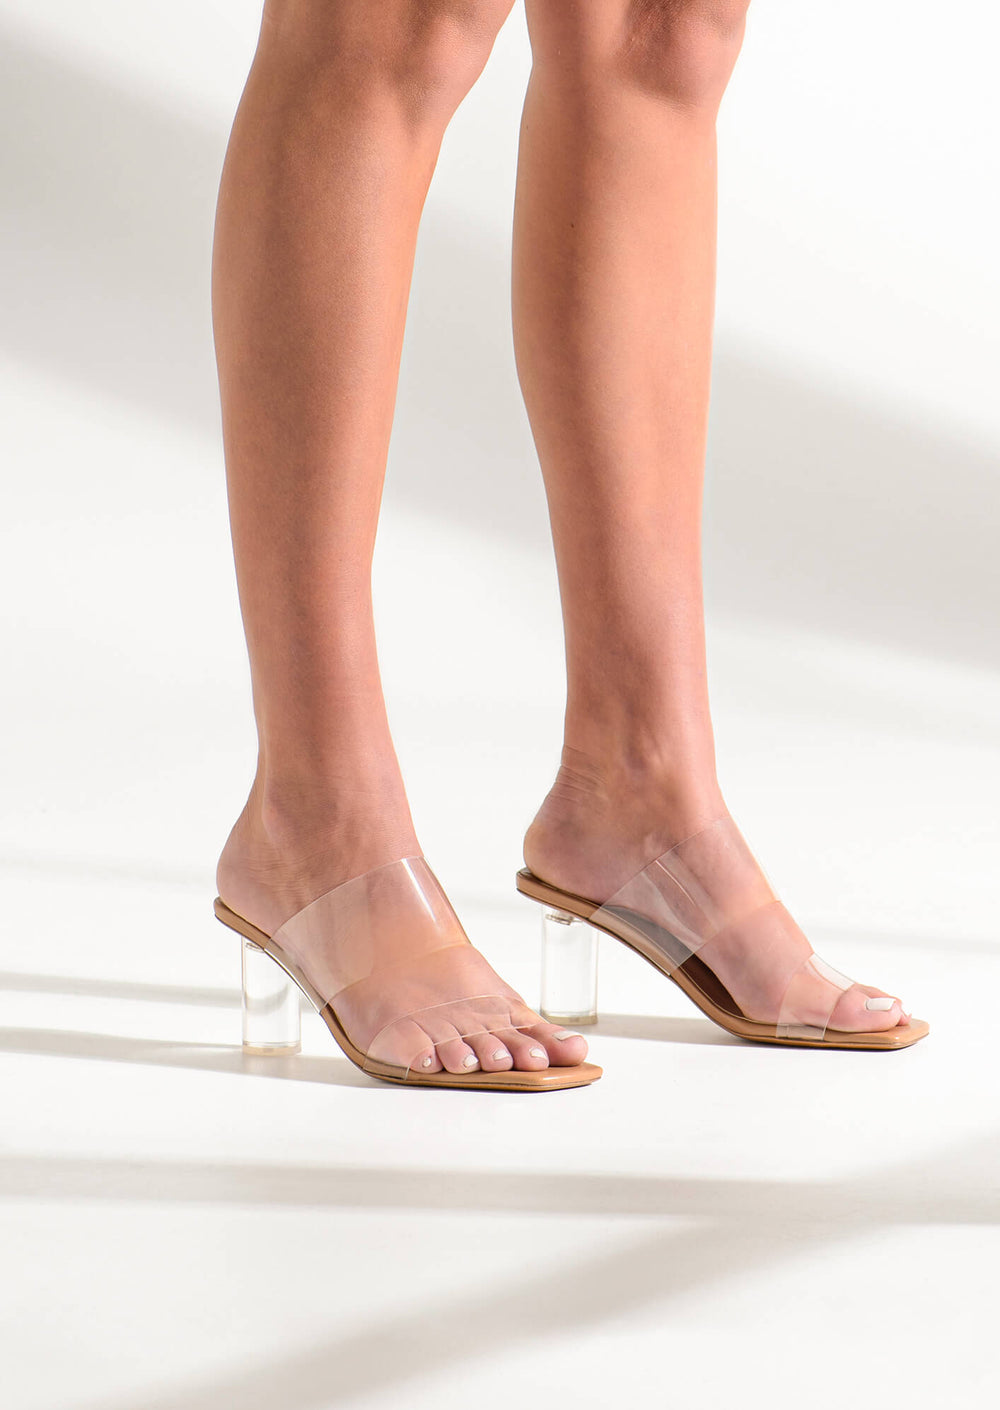 Sabelle Clear Vynalite/Skin Capretto Heels